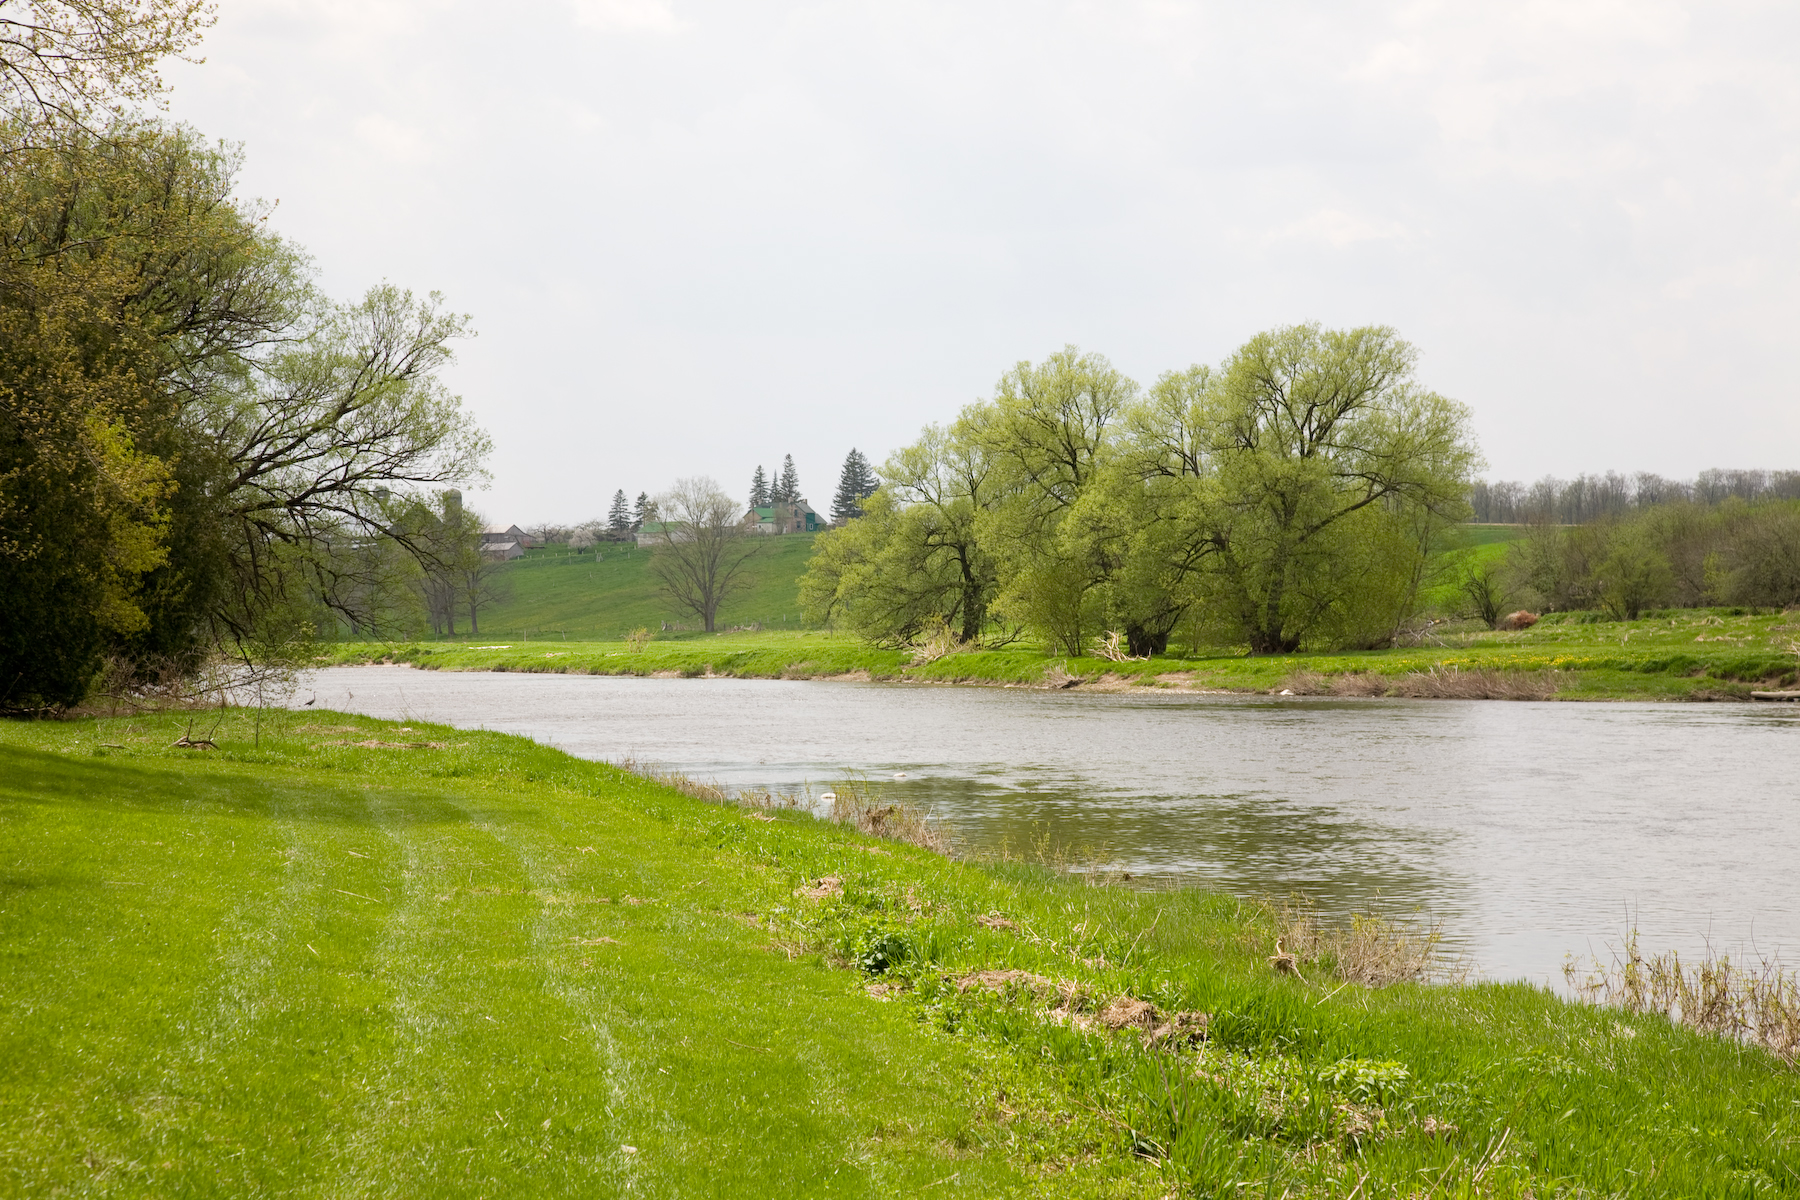 The Grand River at West Montrose